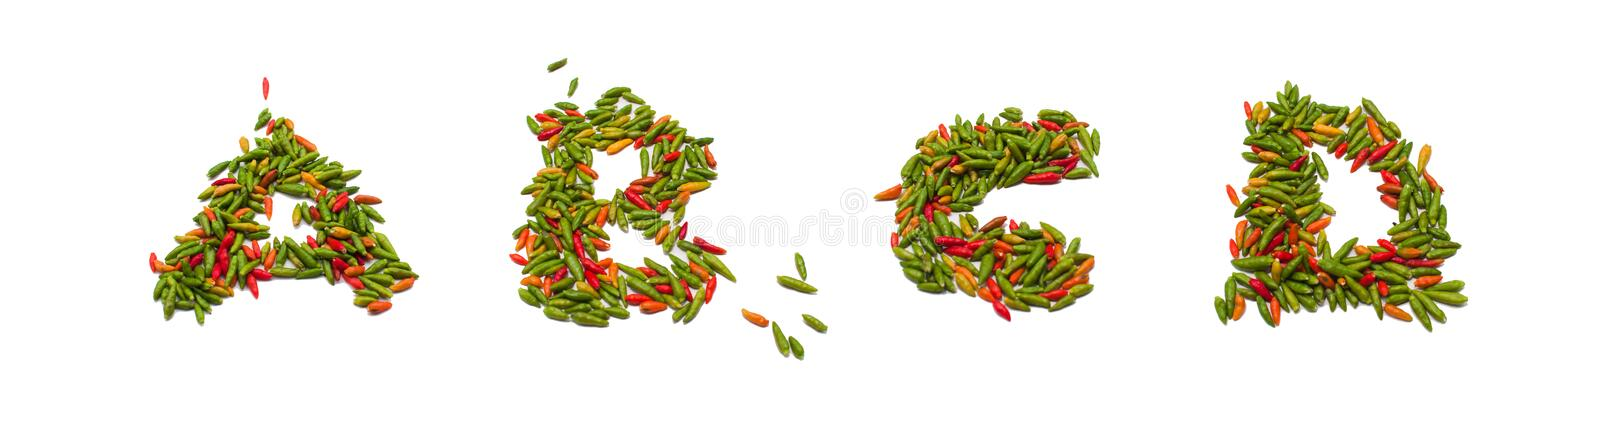 Download Thai chili alphabets stock photo. Image of indian, fiery - 20051202